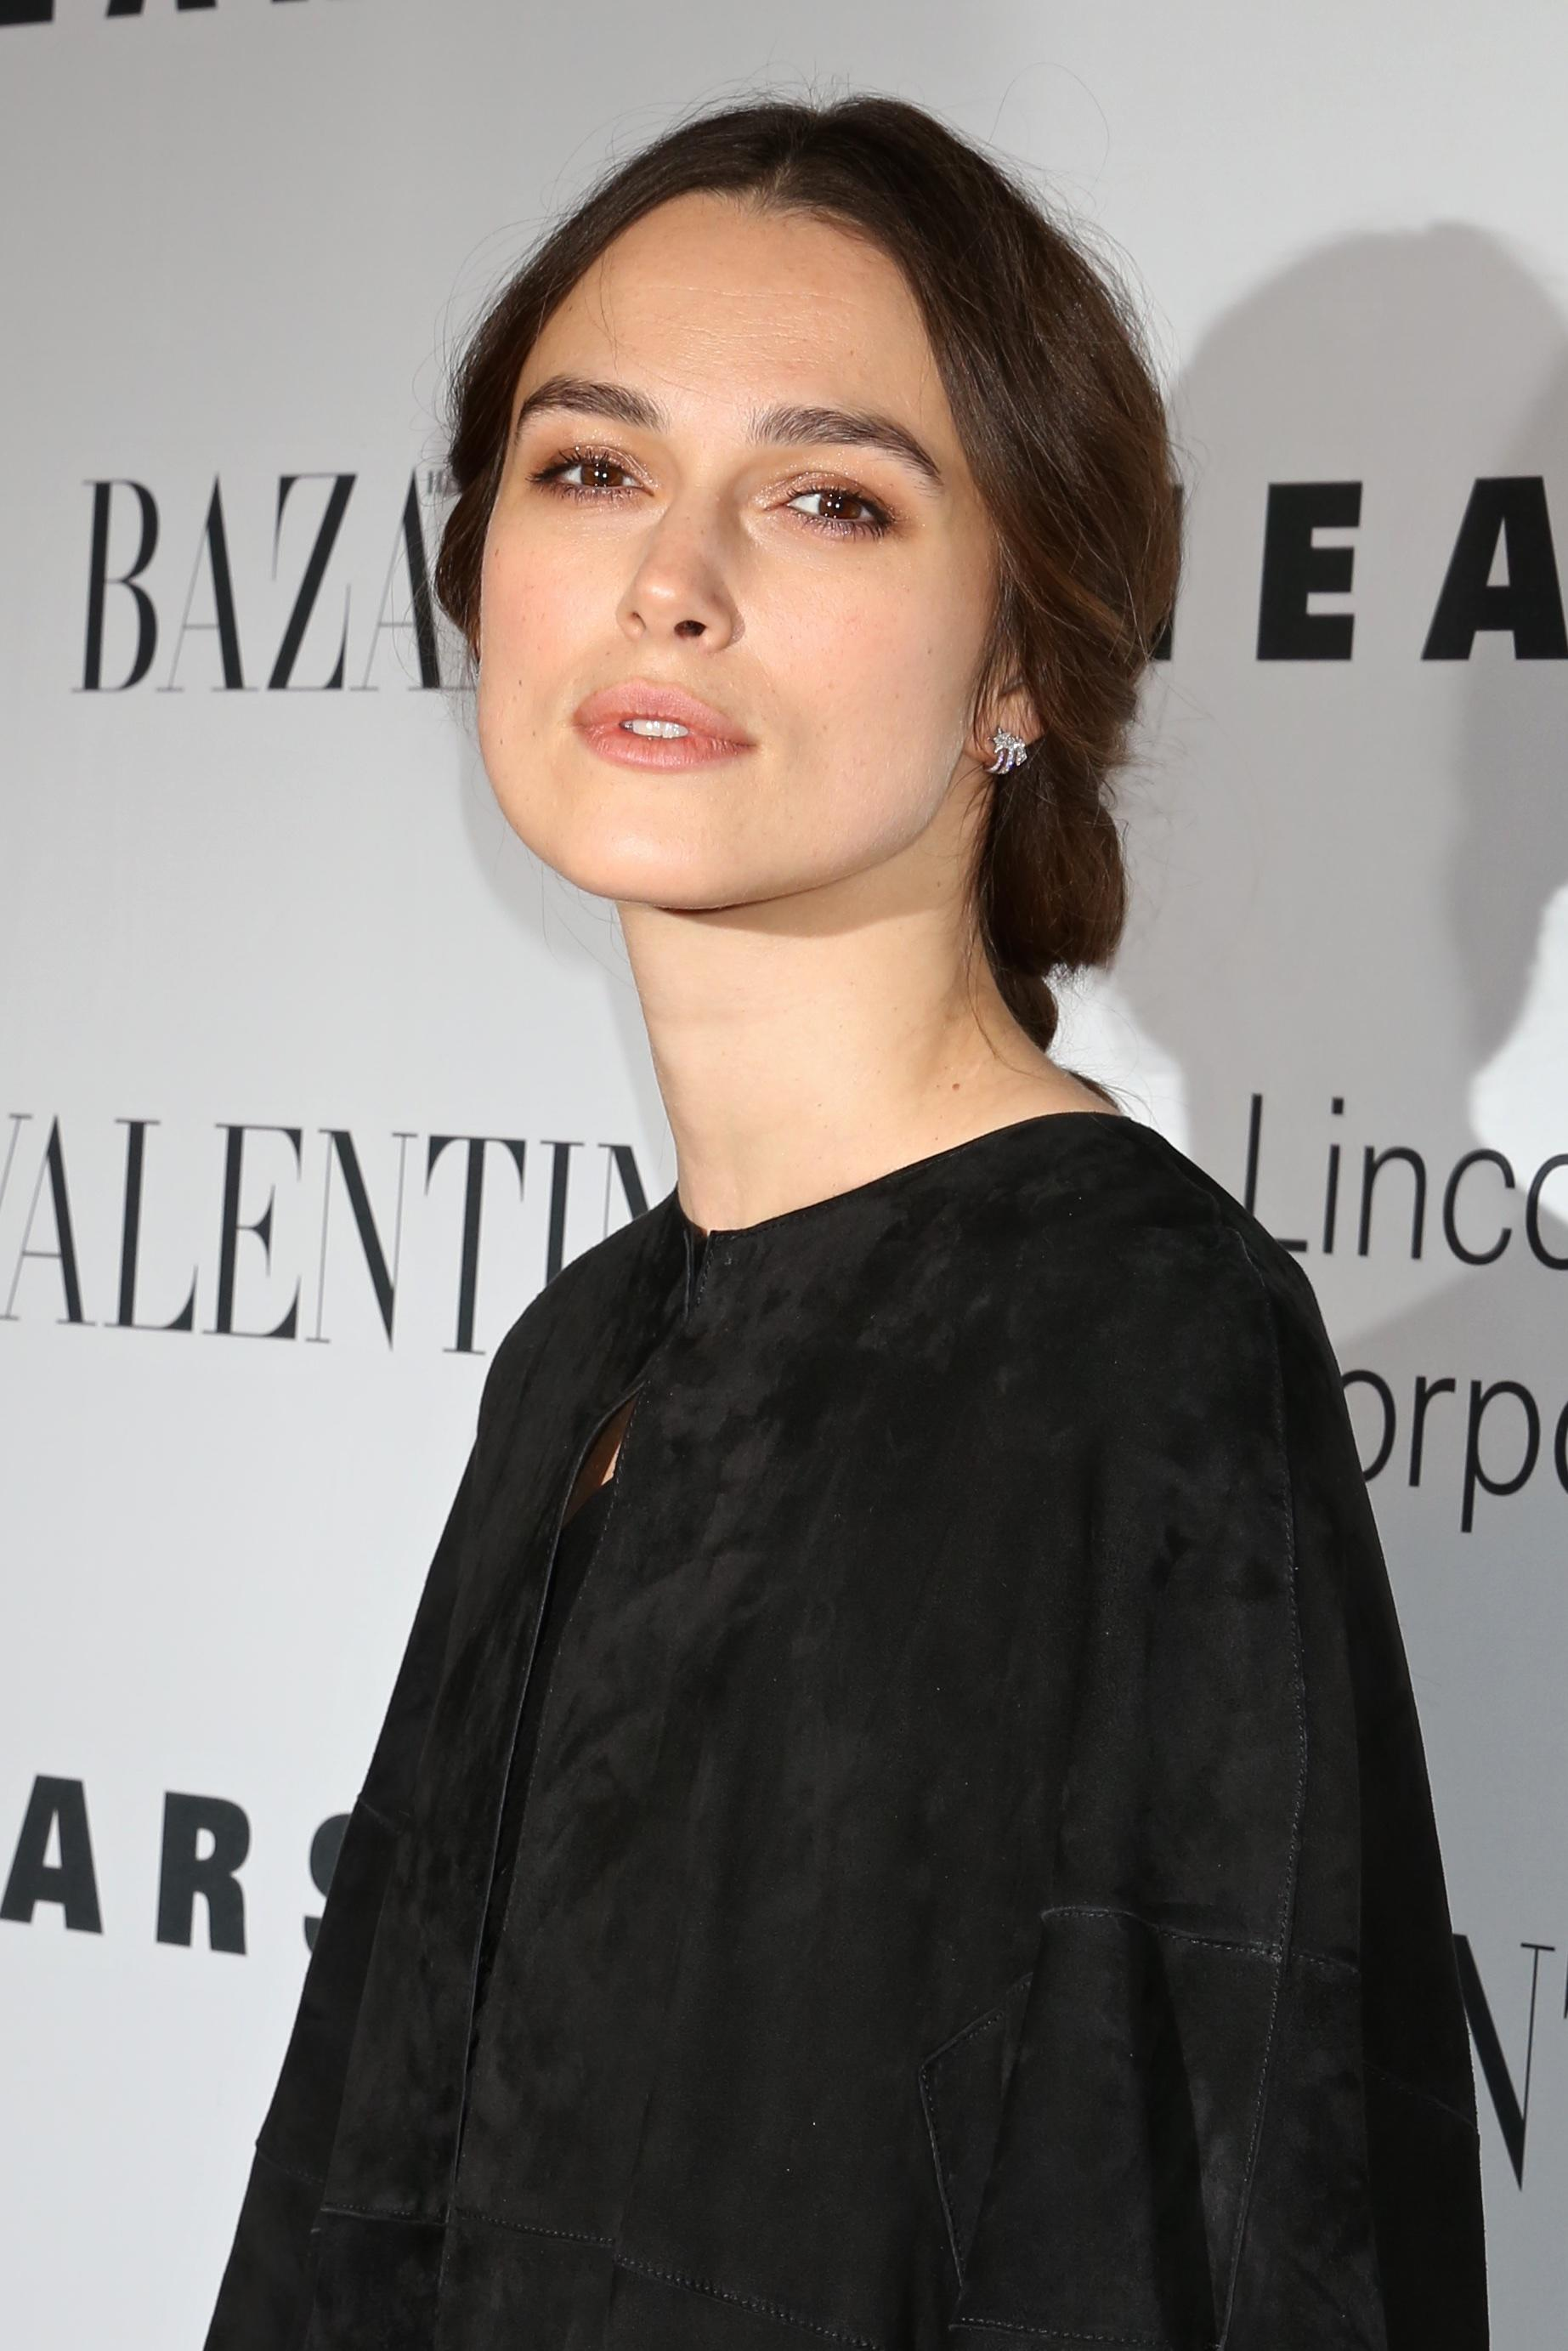 Keira Knightley In Talks For 'Collateral Beauty'